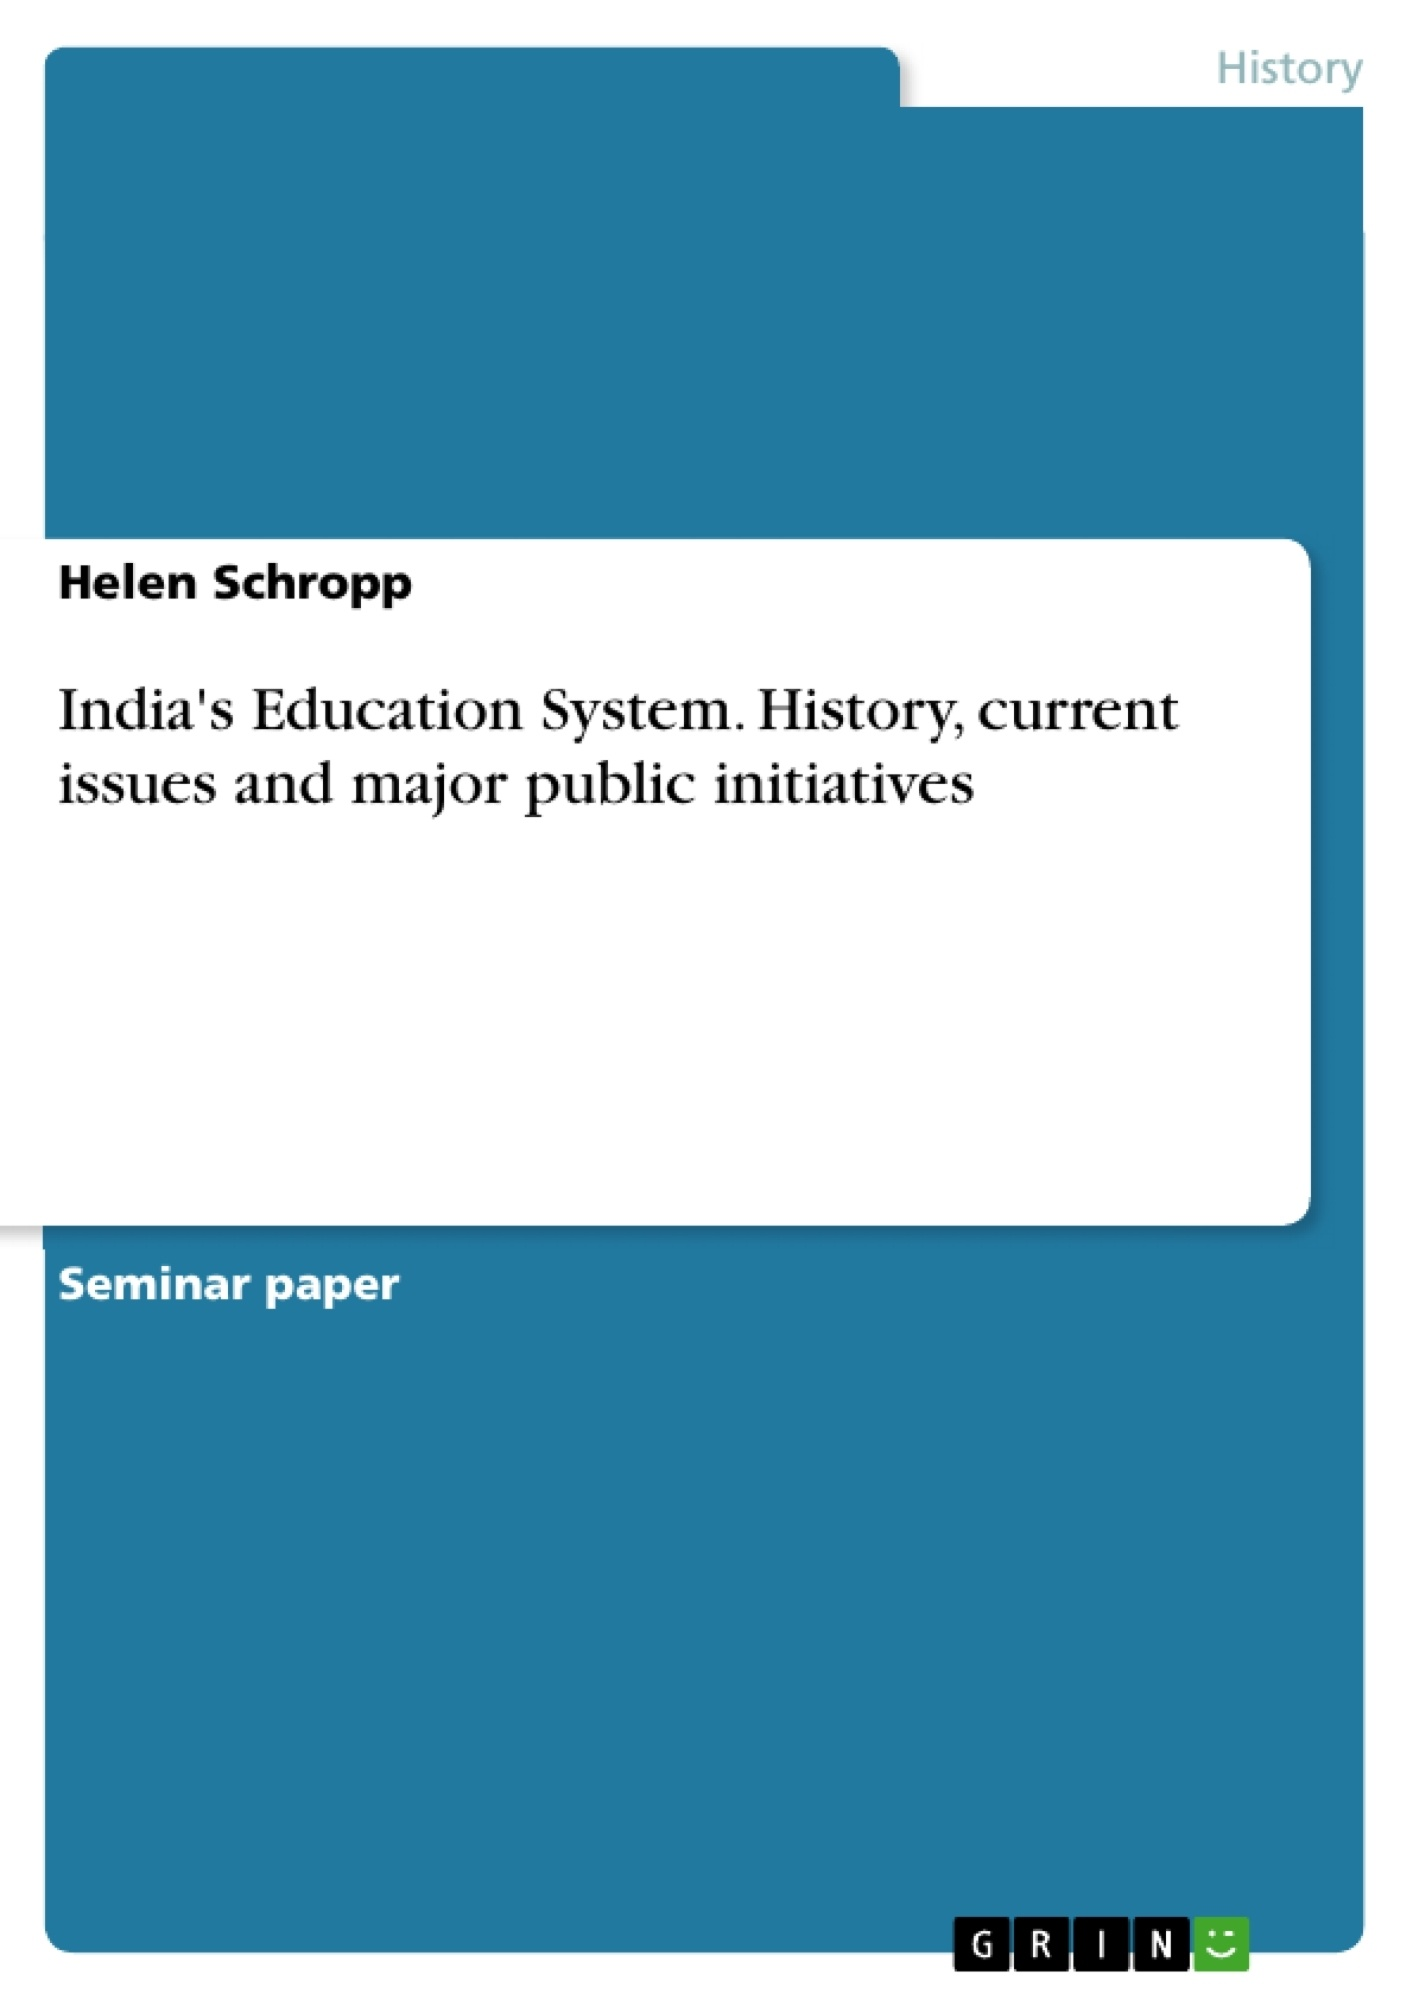 Title: India's Education System. History, current issues and major public initiatives